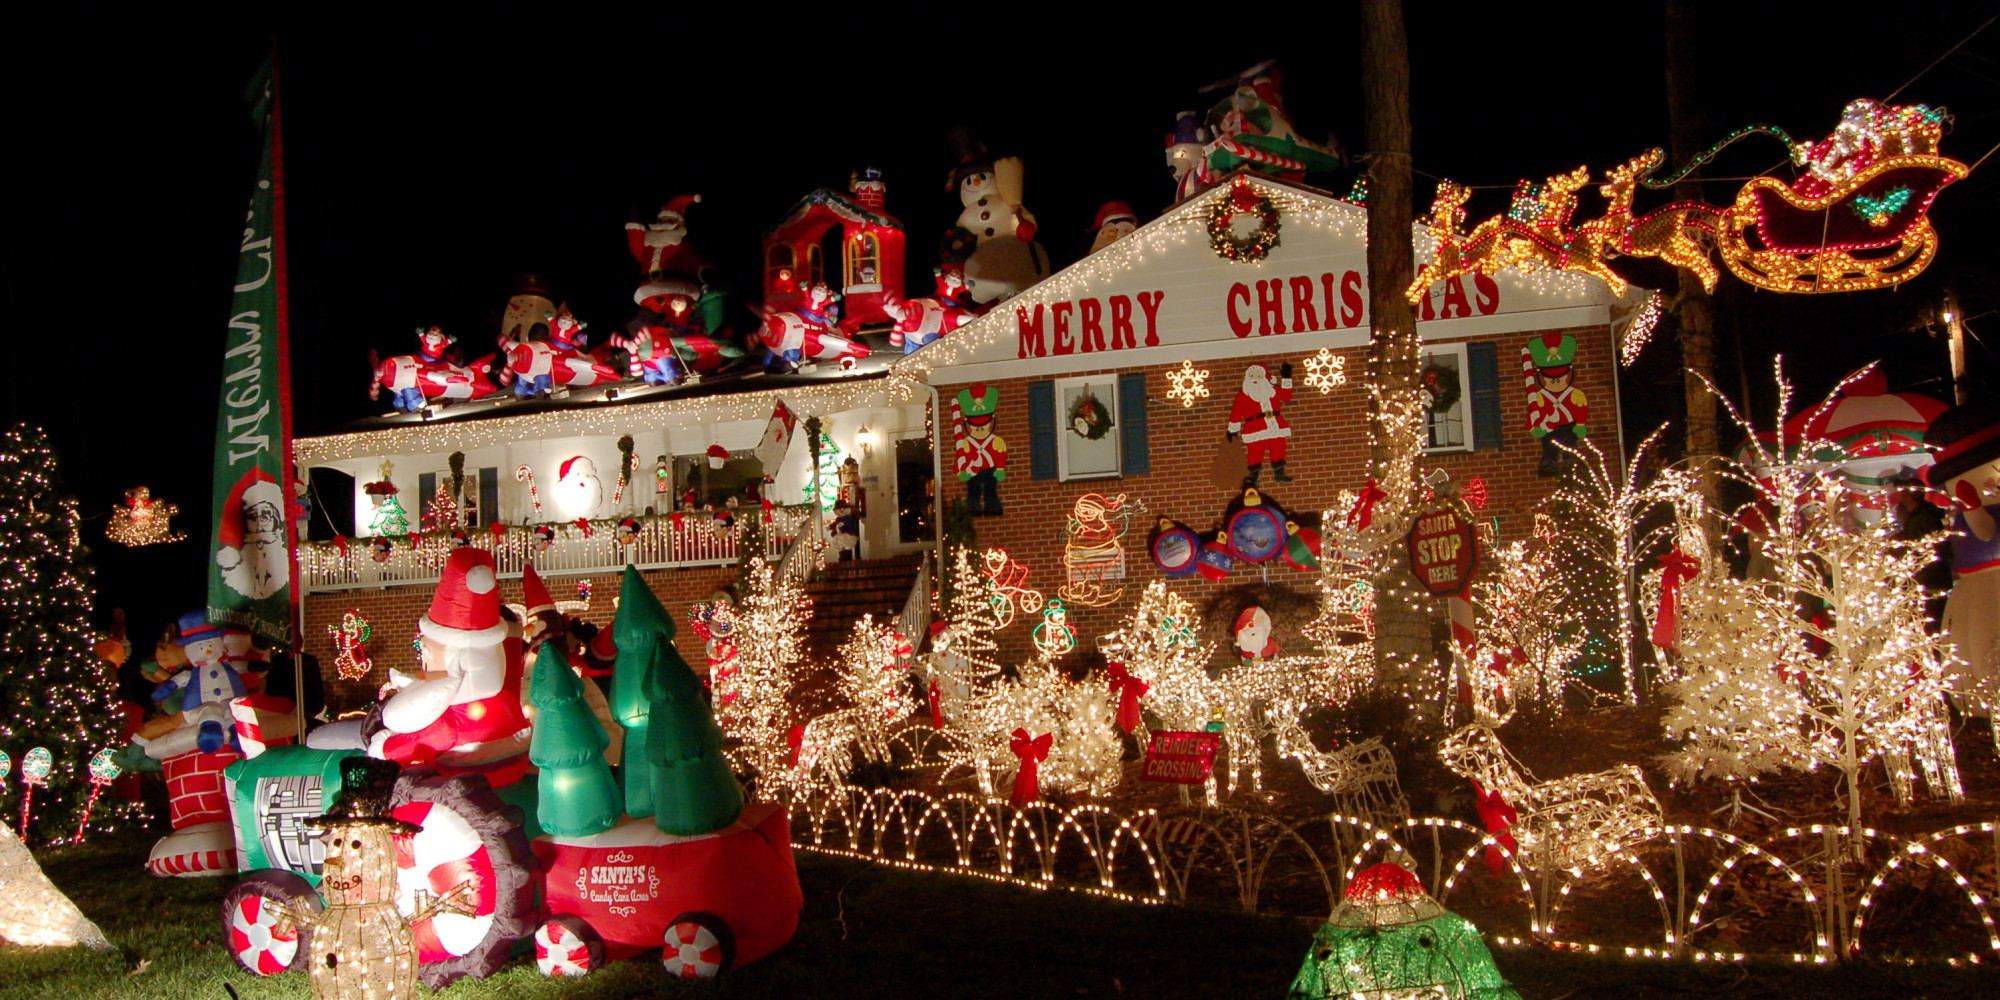 9 tacky christmas decorations that will ruin the holidays huffpost. Black Bedroom Furniture Sets. Home Design Ideas